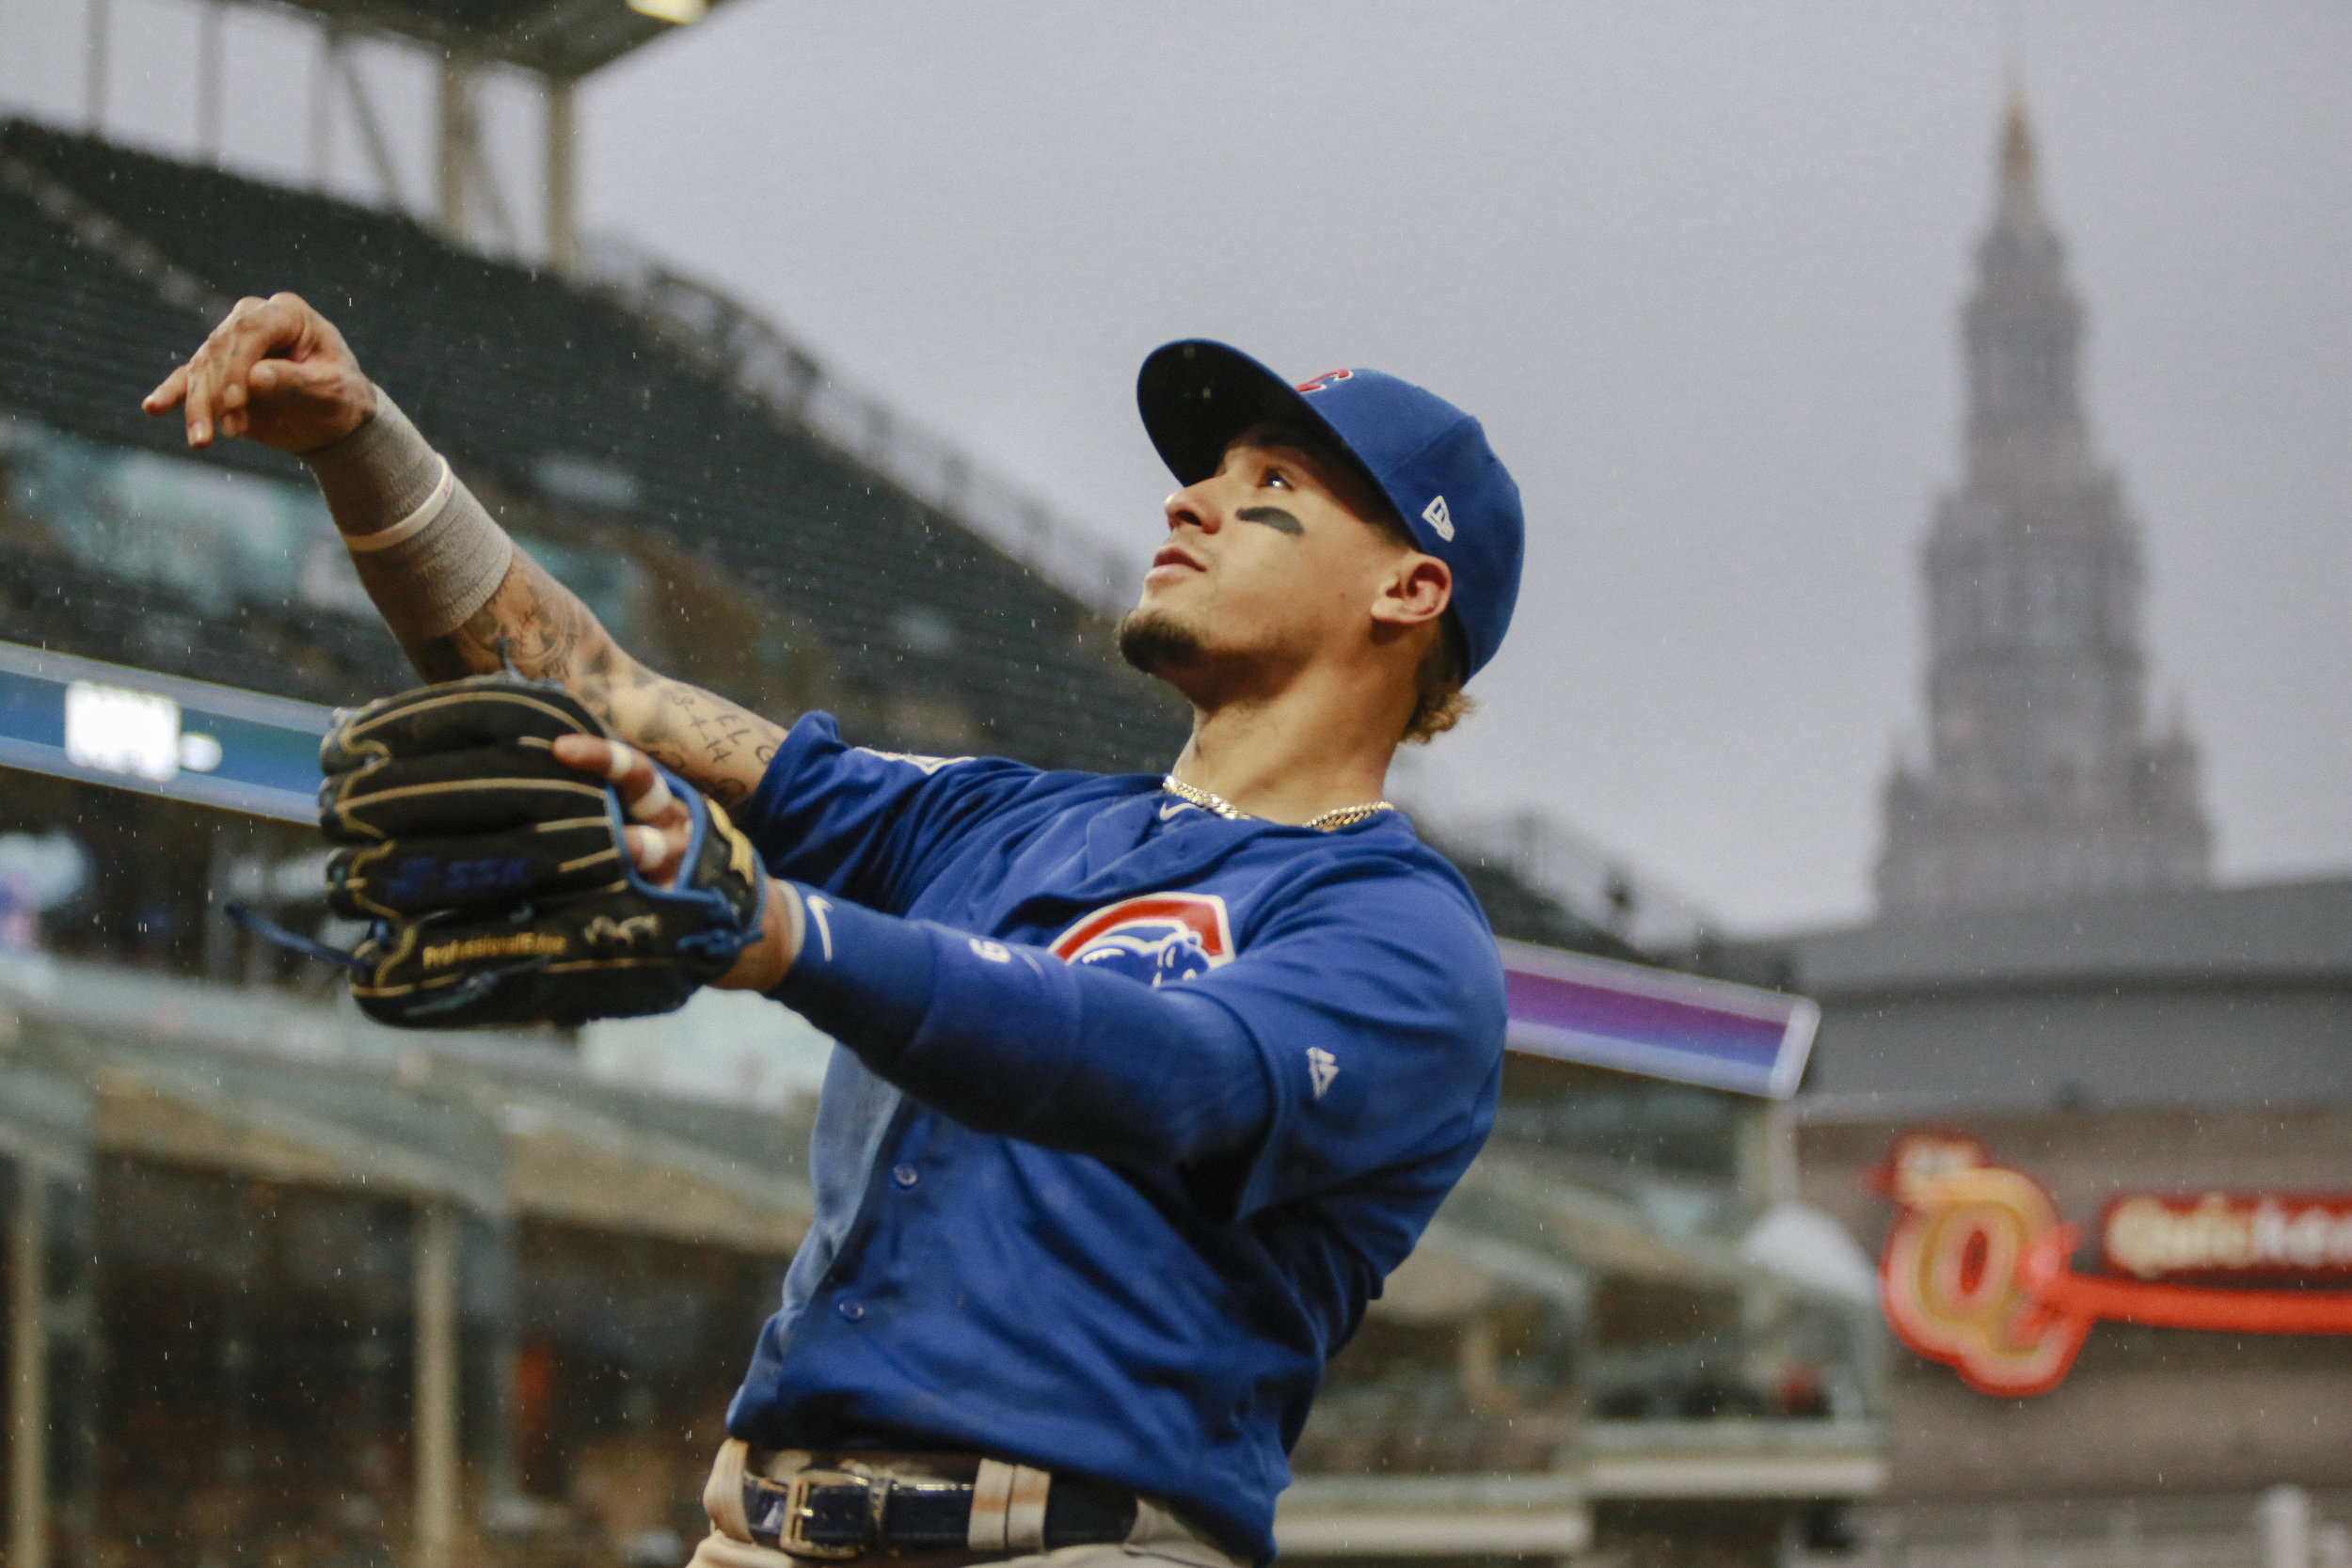 Javier Baez throws a ball into the crowd at the conclusion of the inning during the first matchup between the Cubs and Indians since the 2016 World Series.